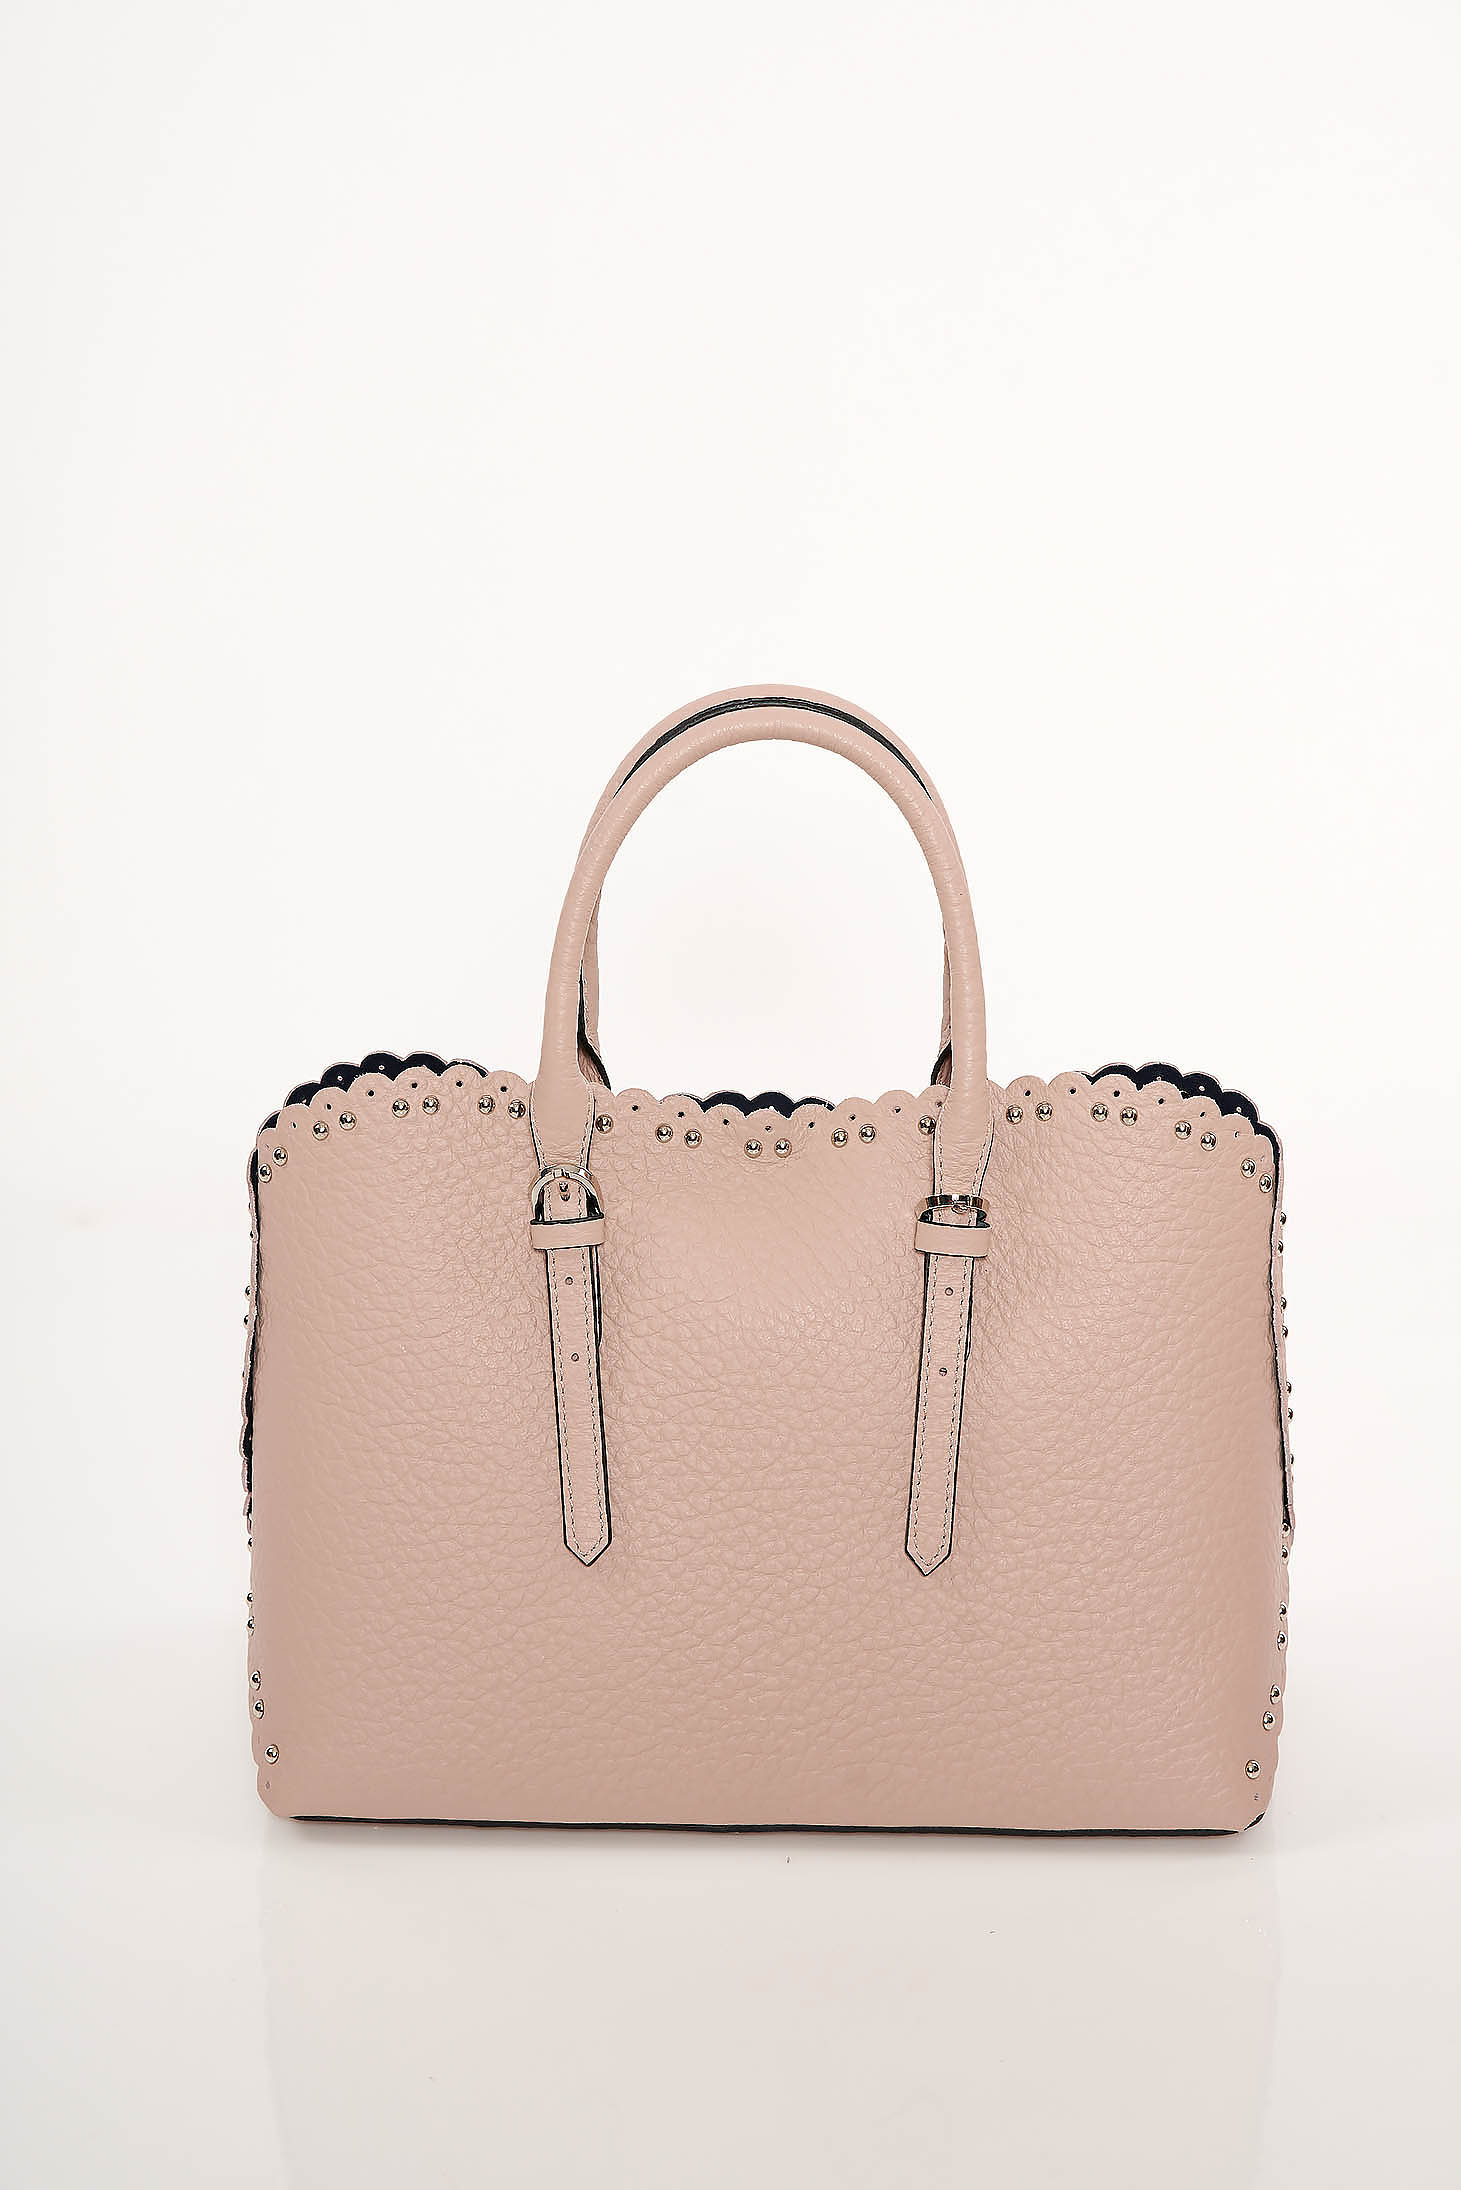 Lightpink office bag natural leather with metallic spikes short handles